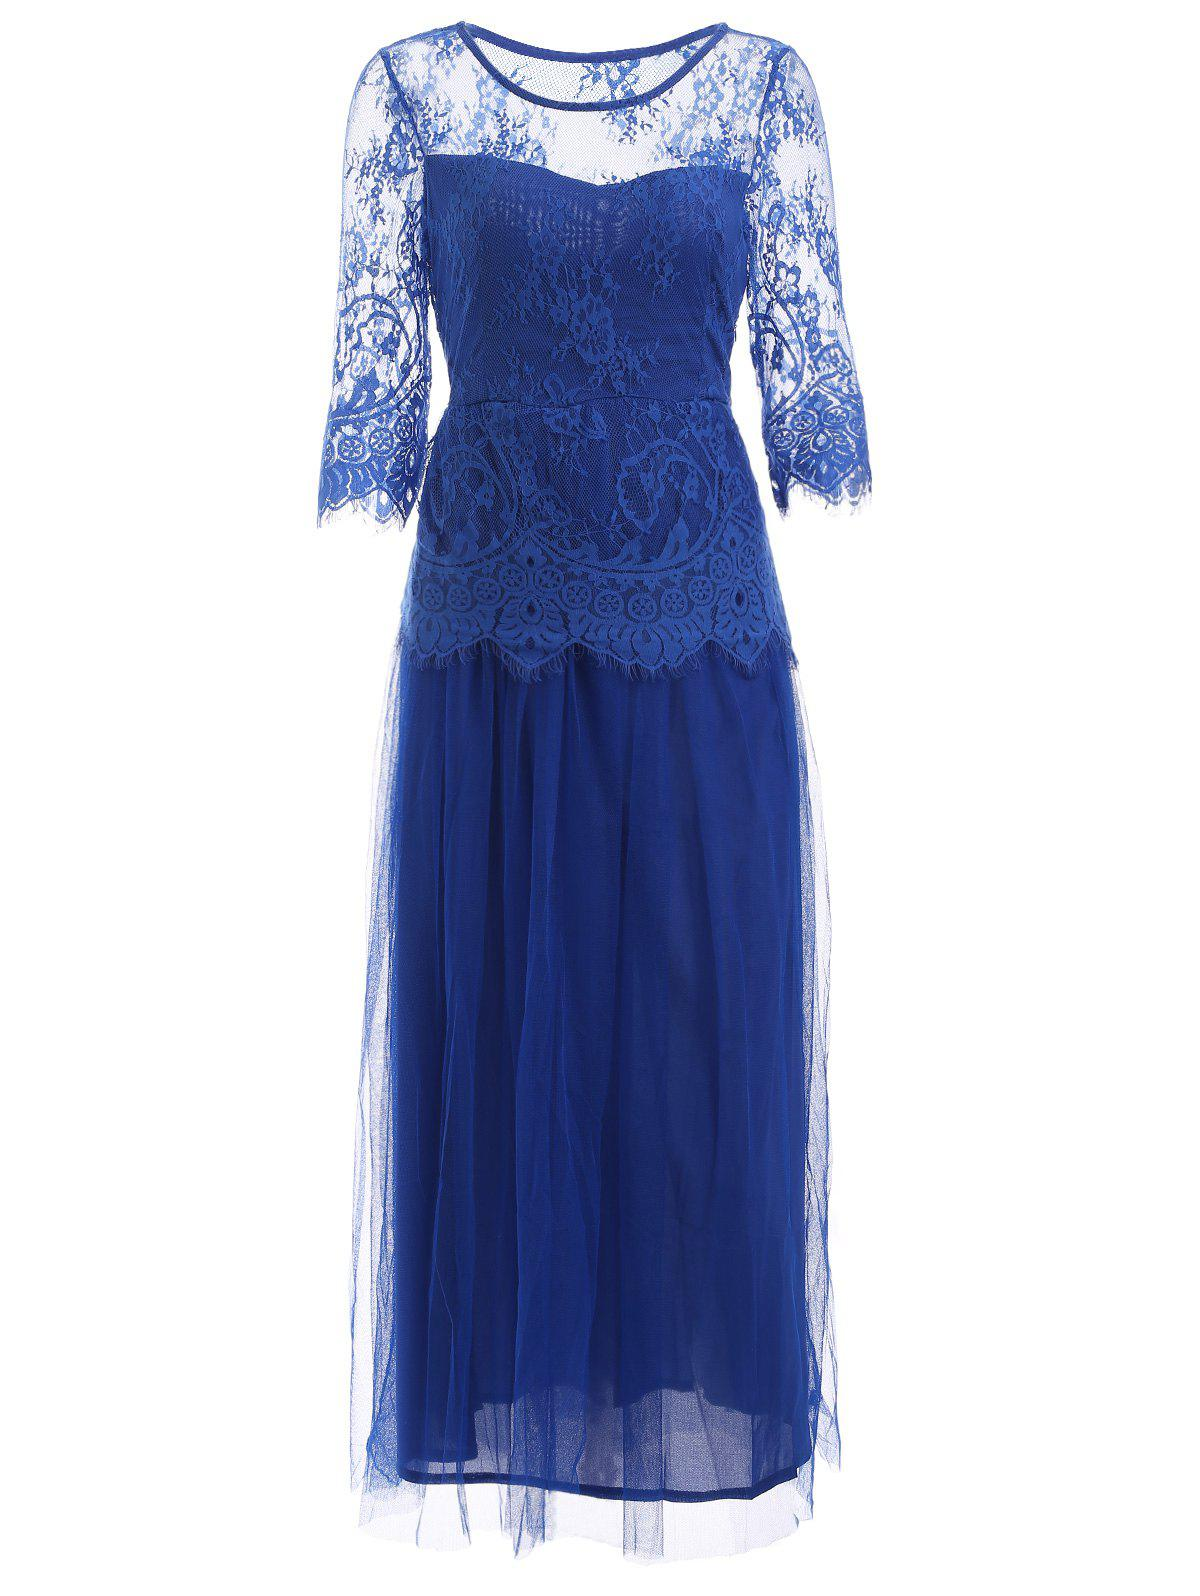 Sweet Women's Embroidered Lace Dress